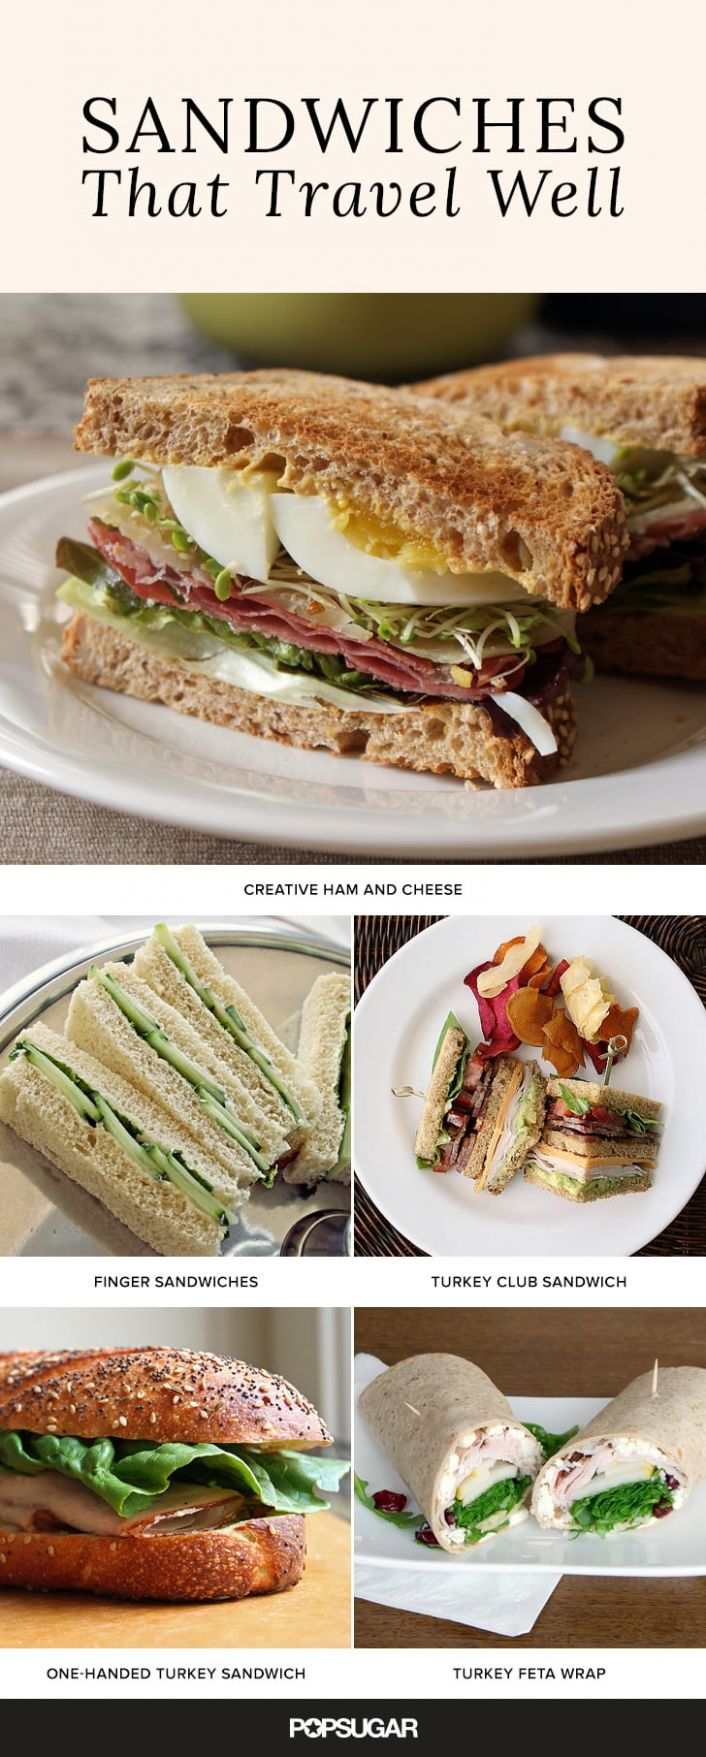 Best Sandwiches For Traveling | POPSUGAR Middle East Food